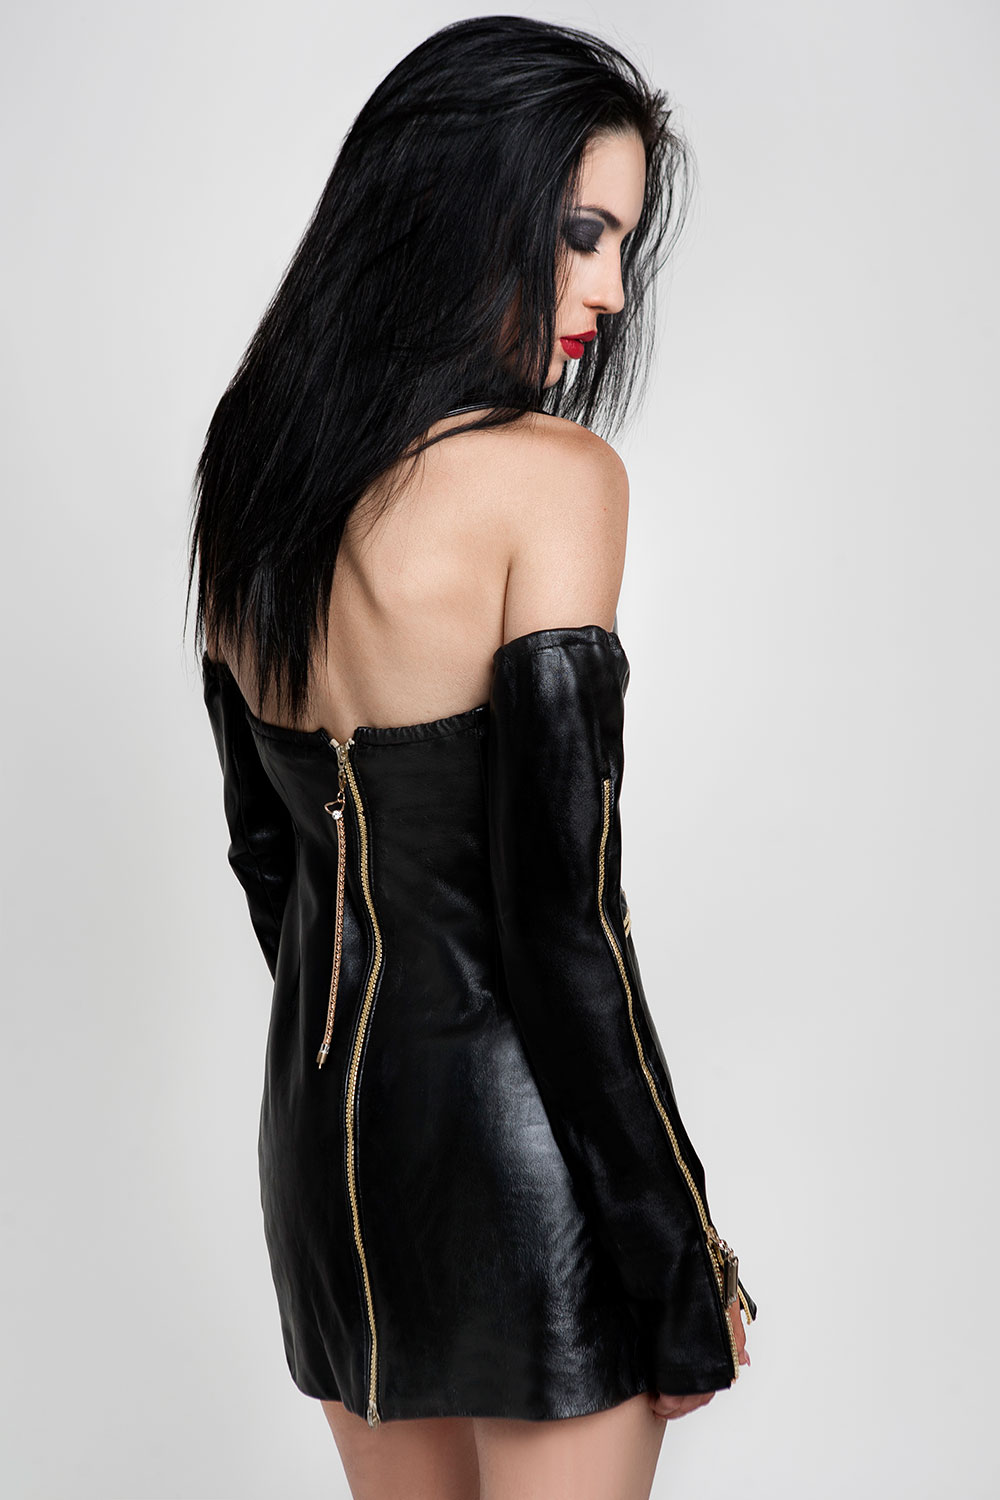 black leather halter neck dress with matching gloves